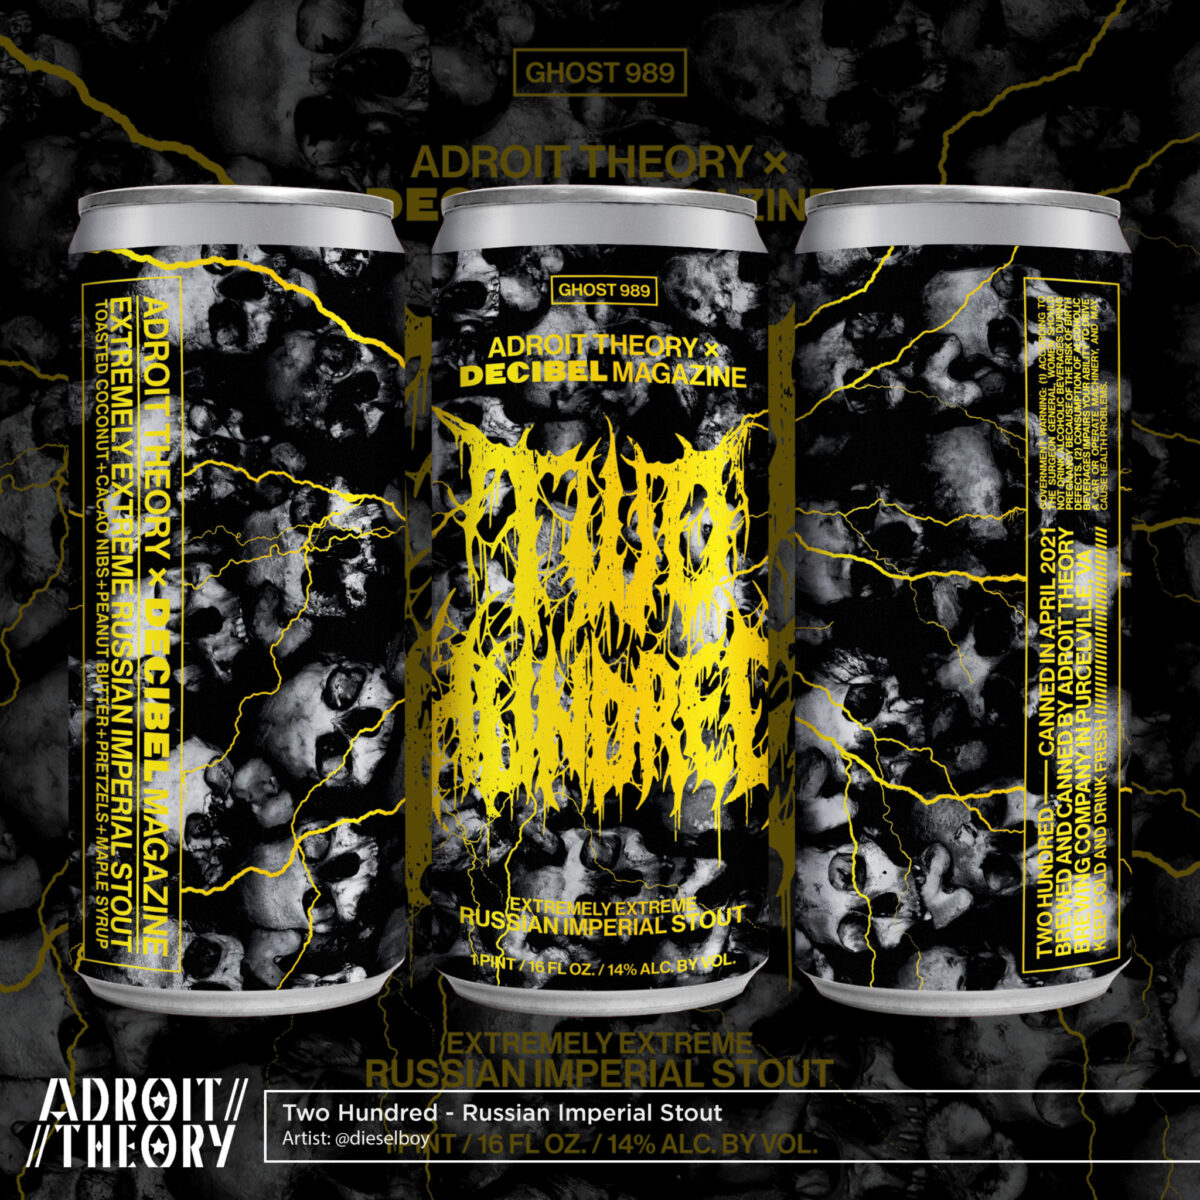 """200,""-the-official-beer-of-decibel's-200th-issue-show-extremely-ex-stream,-available-for-pre-order-from-adroit-theory!"